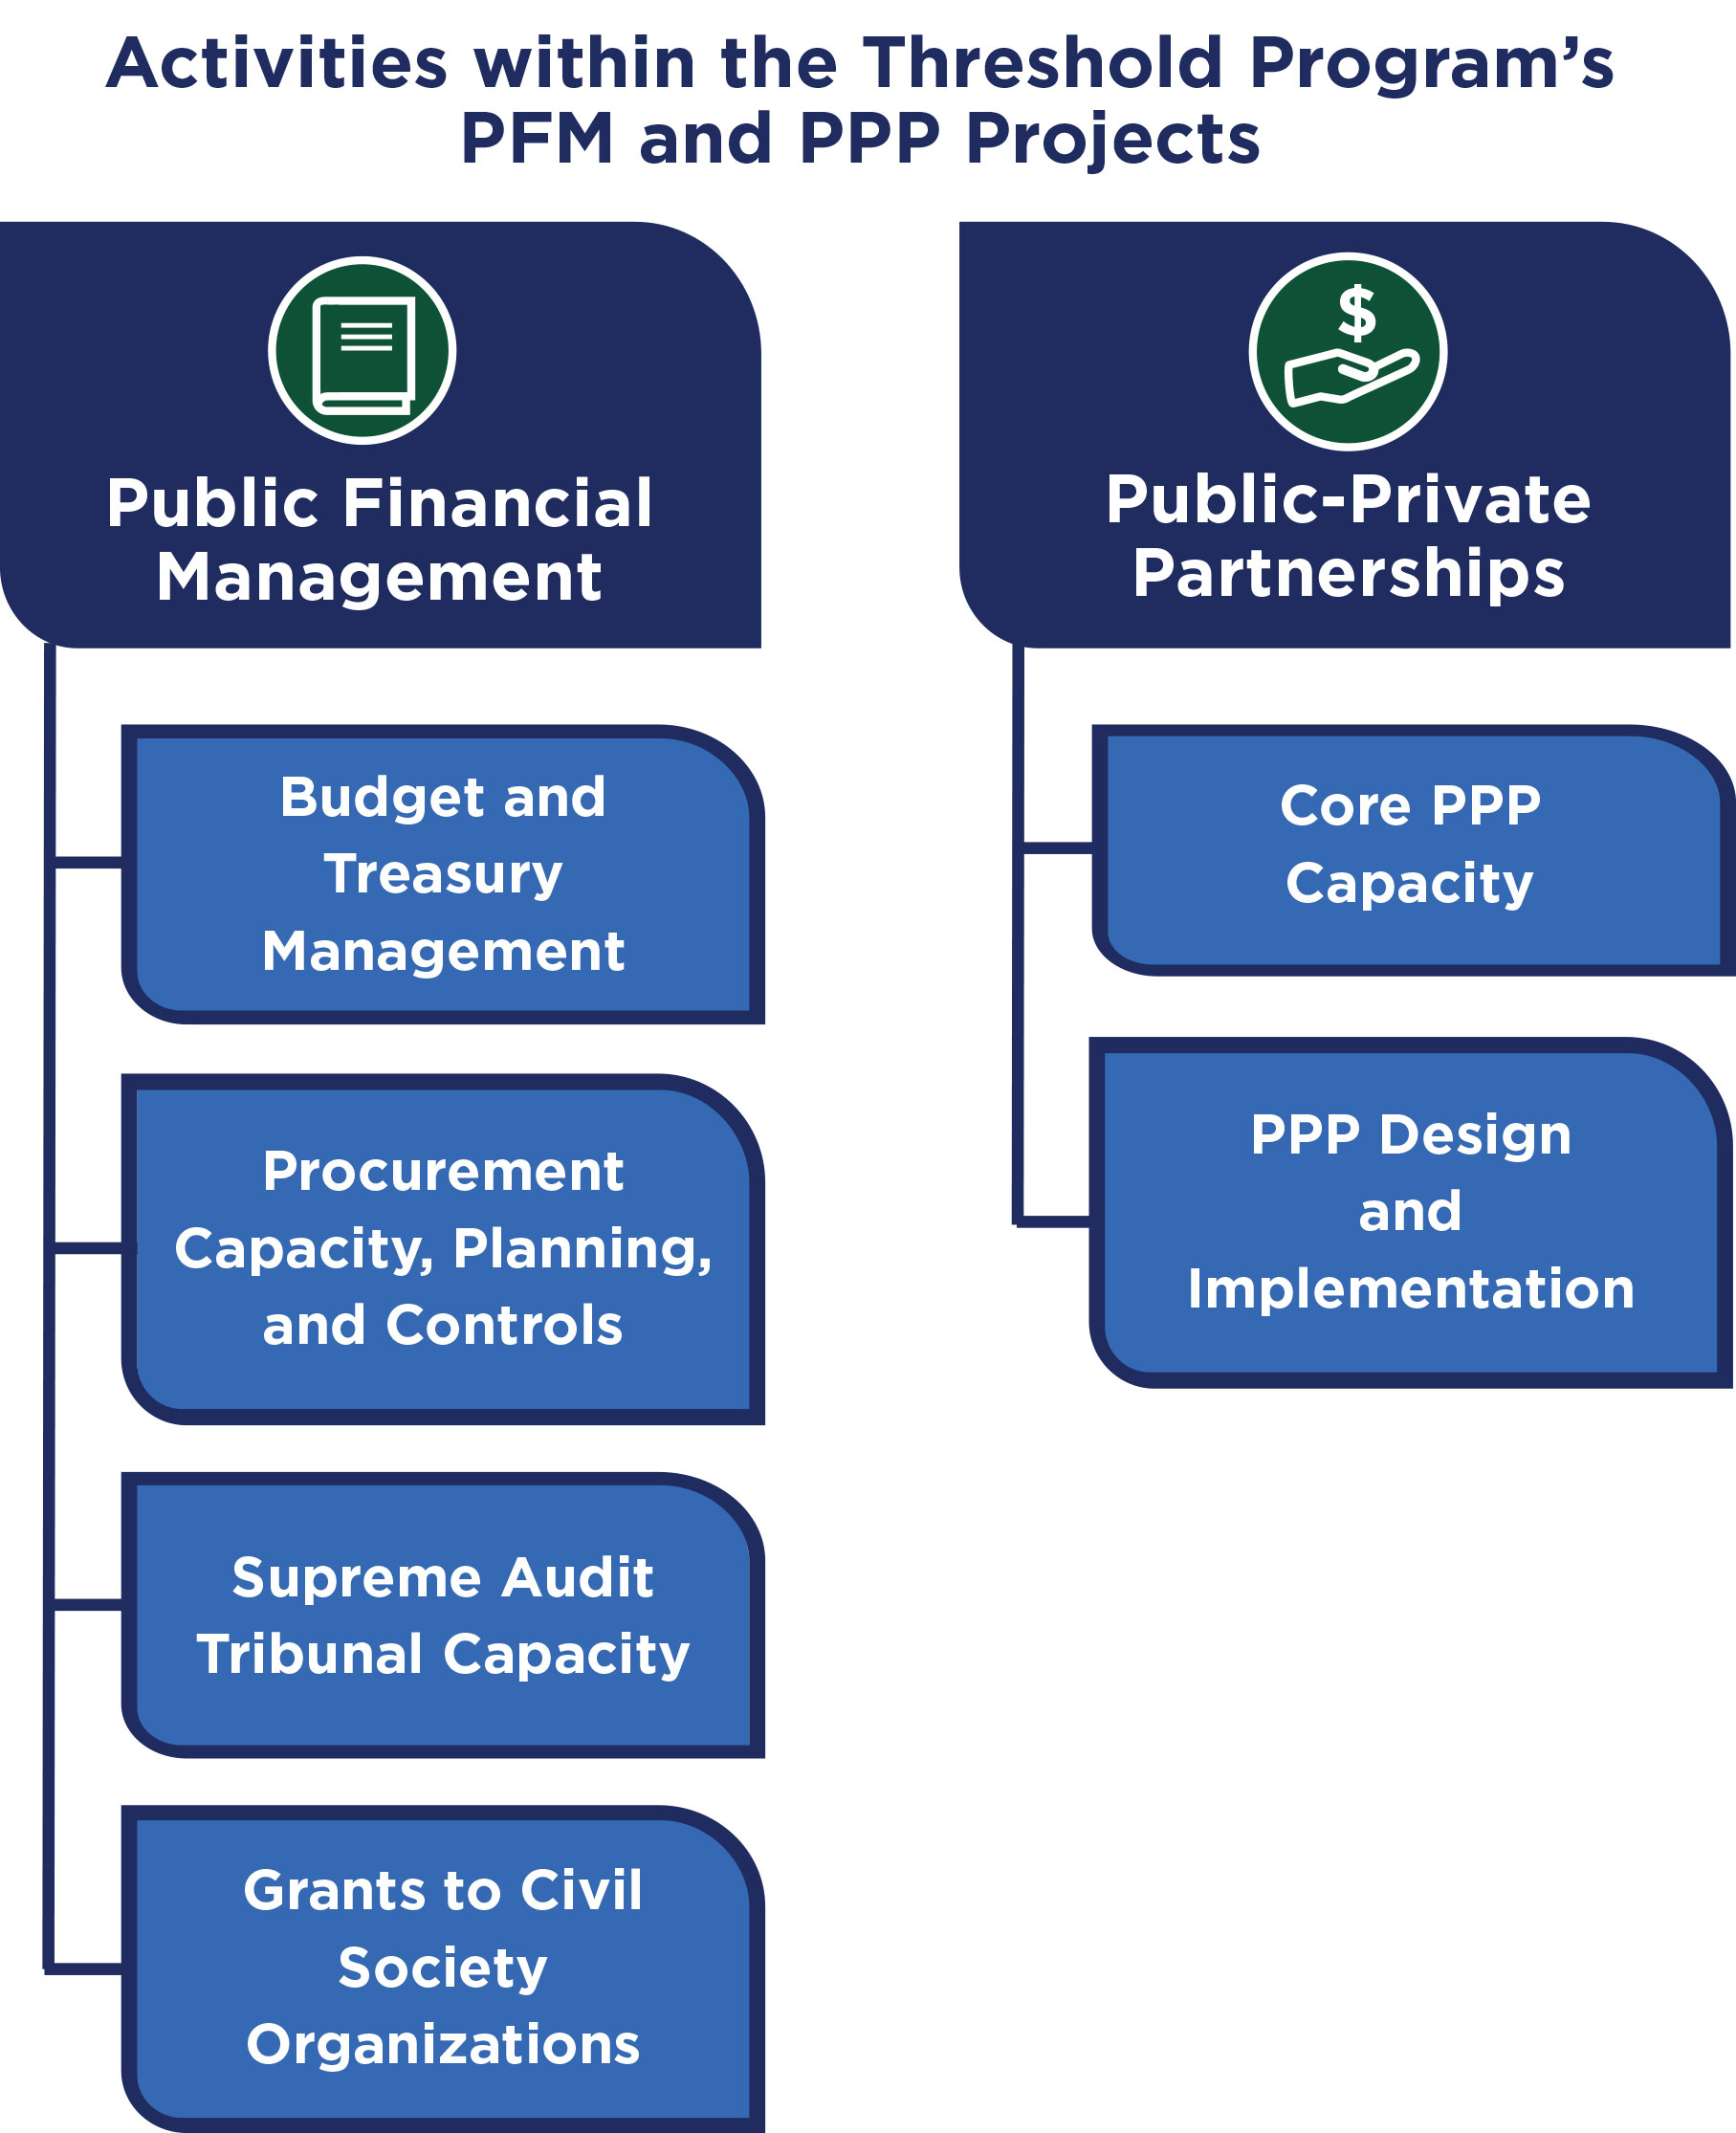 Visual showing Activities within the Threshold Program's PFm and PPP Projects